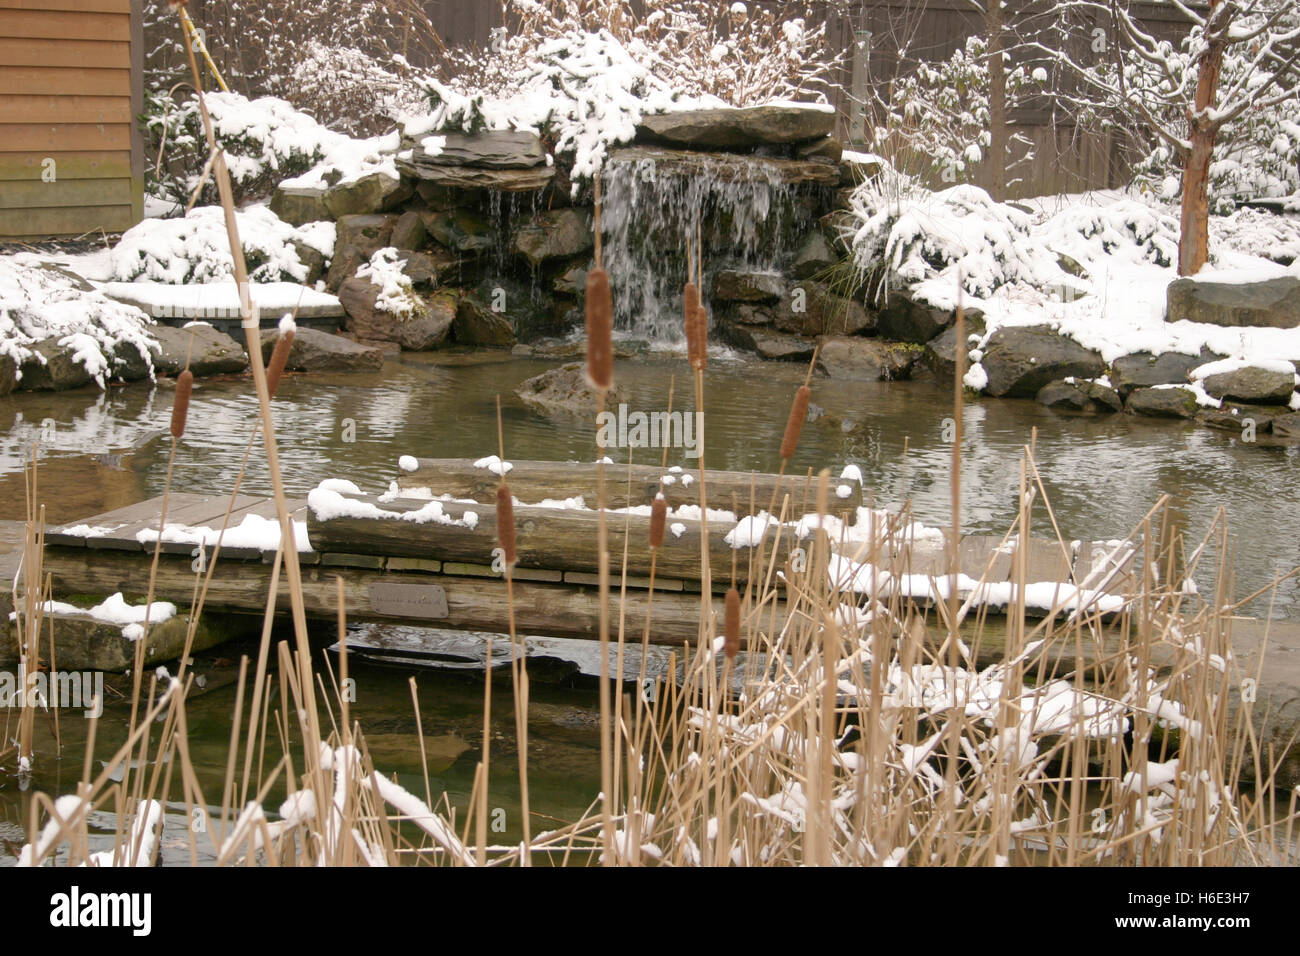 Winter at the Botanical Garden in Cleveland, Ohio Stock Photo ...